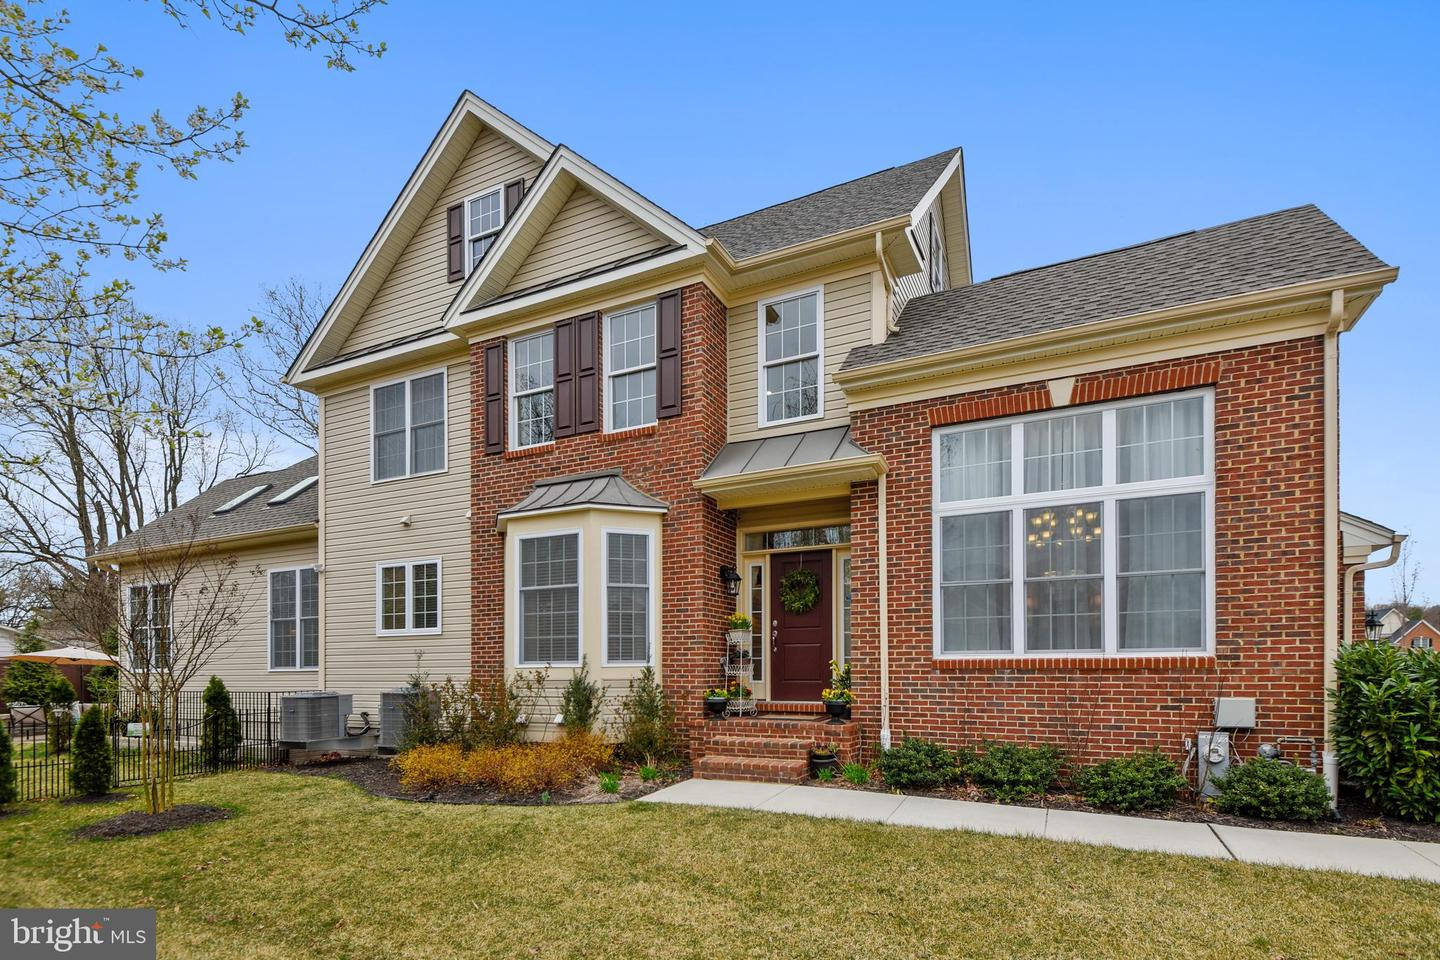 1341 Grand Canopy Dr Severn MD 21144